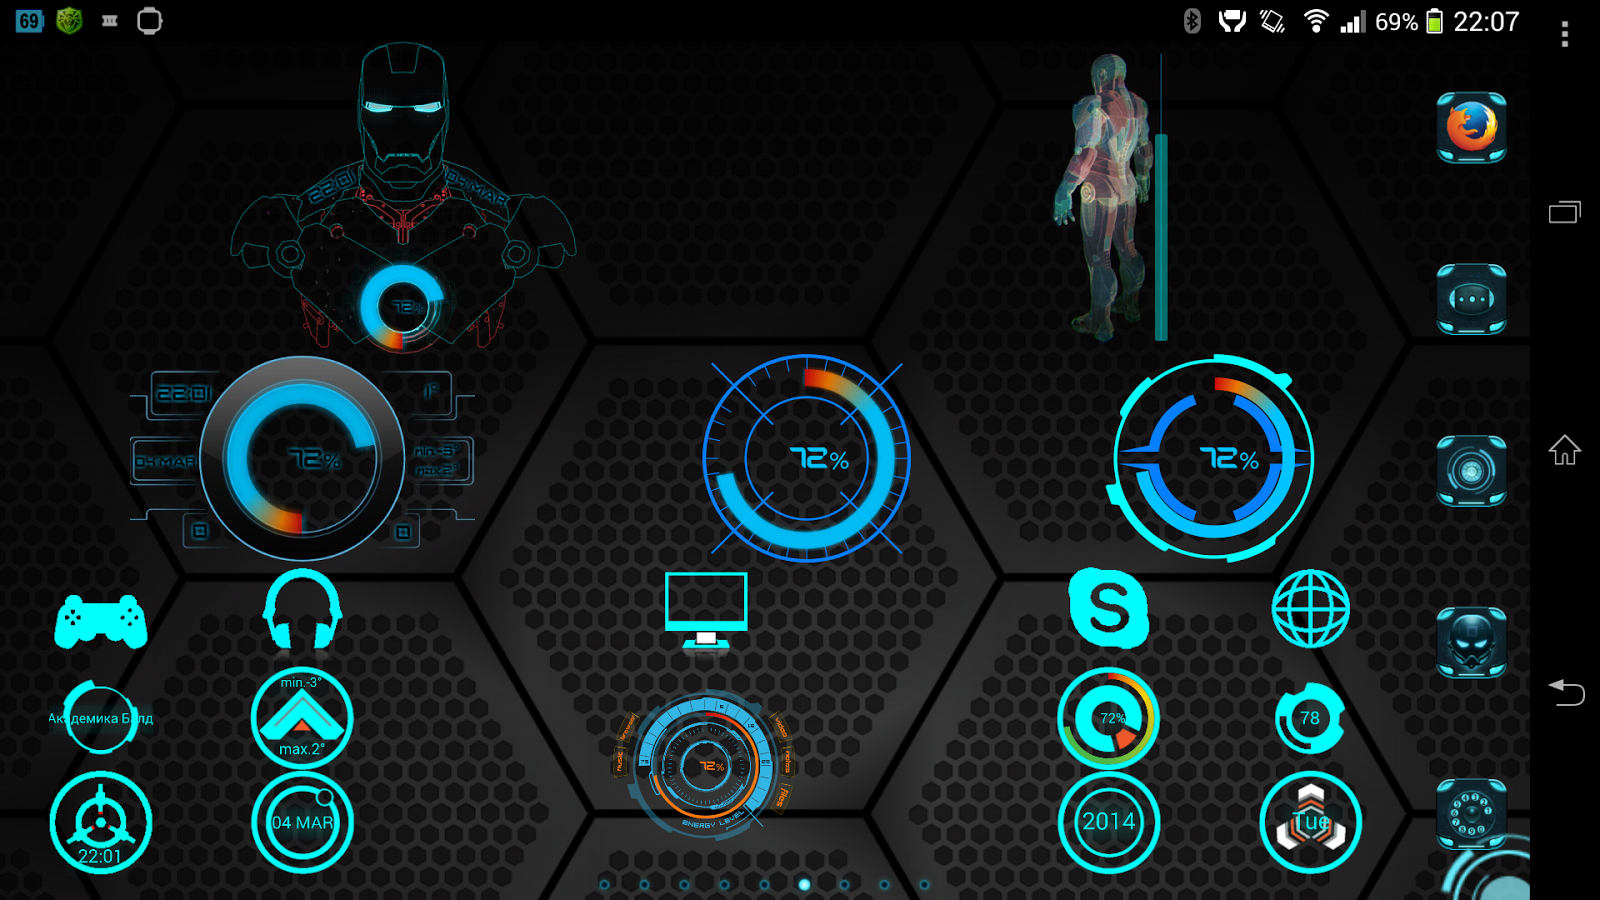 Iron man jarvis wallpaper android images design futuristic android image iron man wallpaper - Iron man jarvis background ...